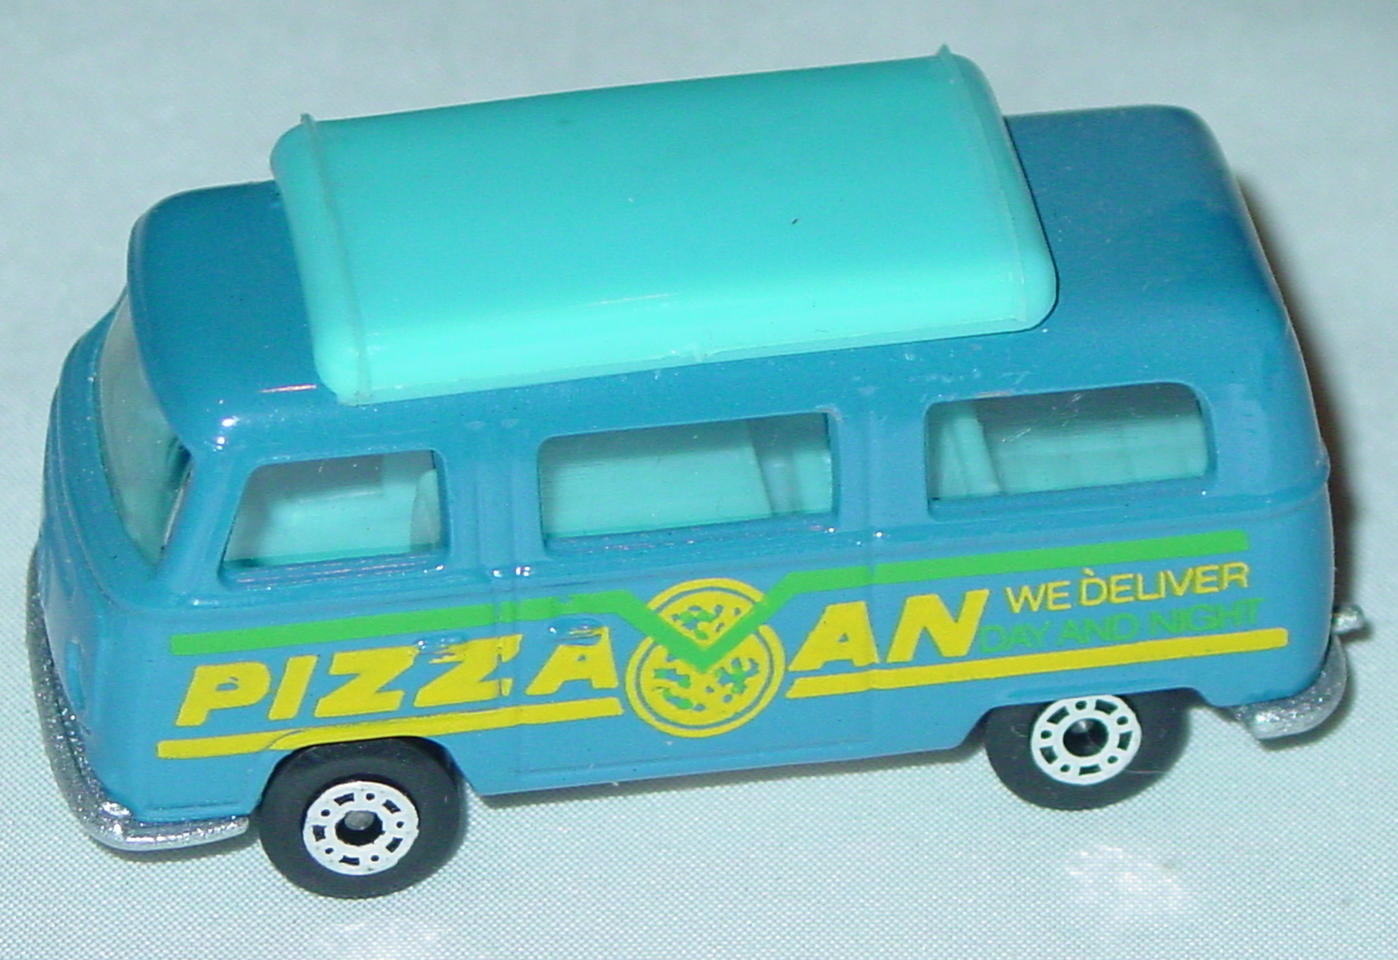 Hungarian 23 A 1 - Pizza Van Blue blue top blue interior sil-grey yellow and green tampo